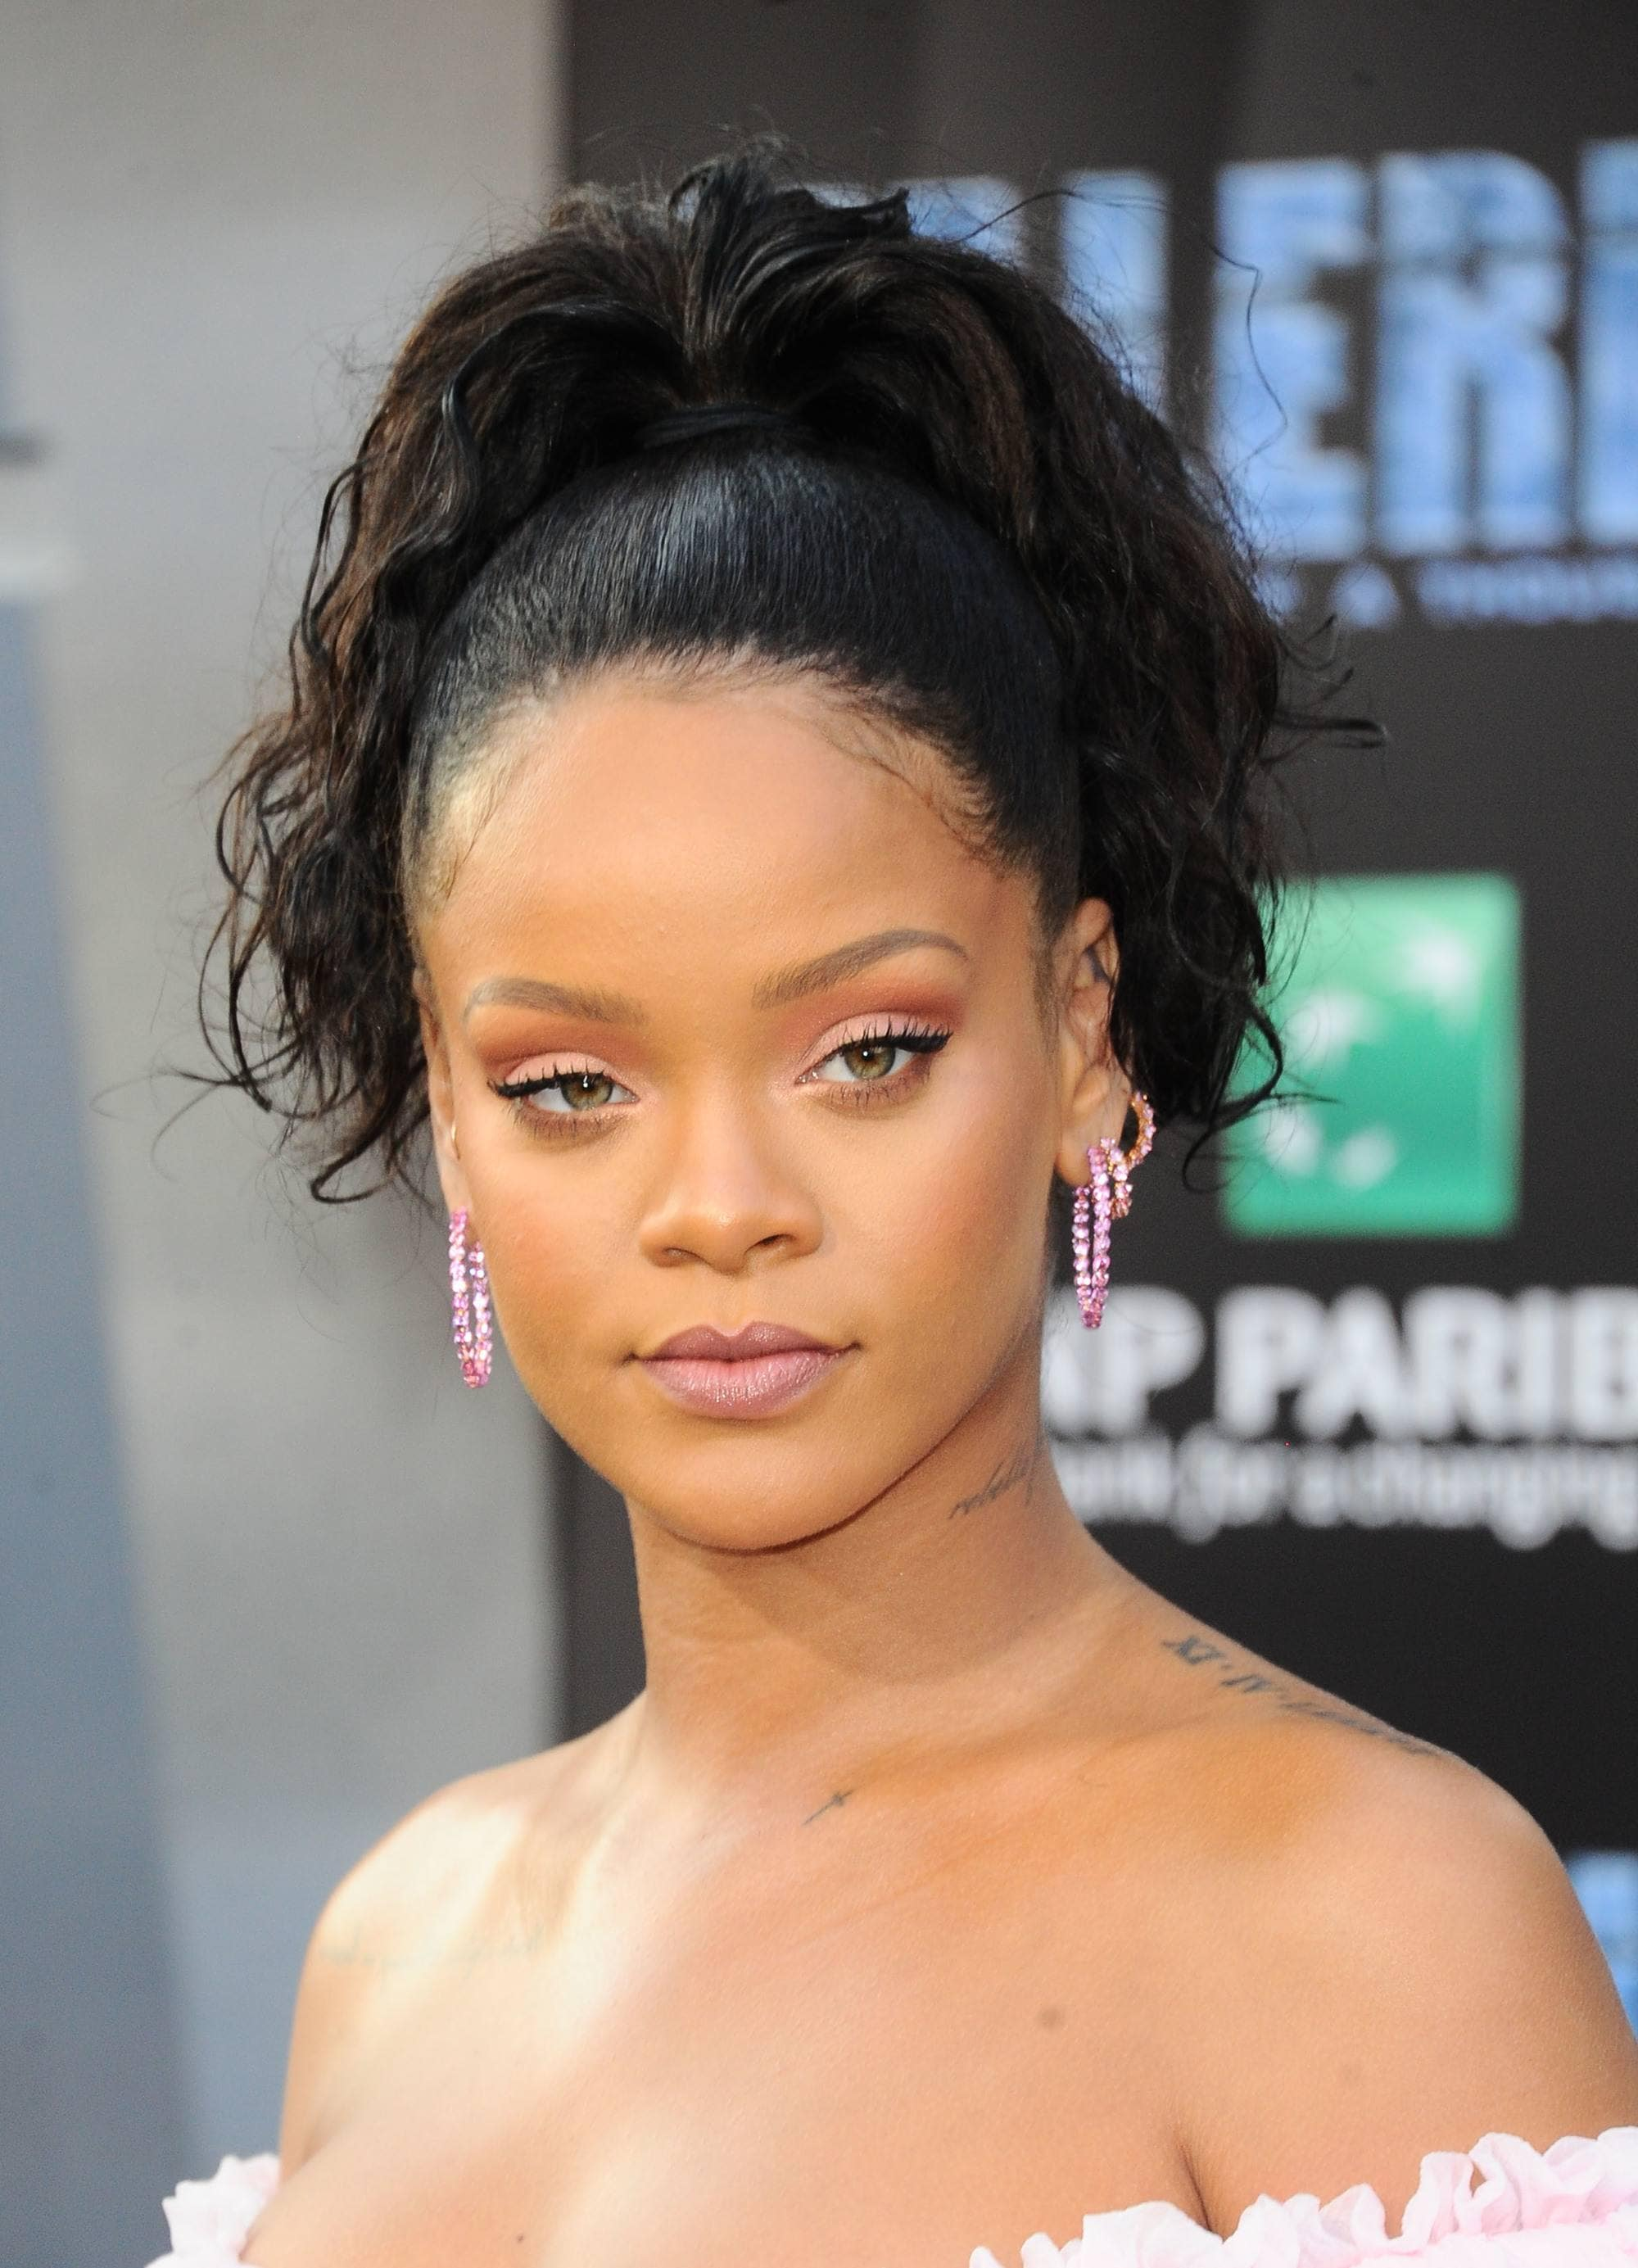 Rihanna with high ponytail with curls in it, at the Valerian premiere